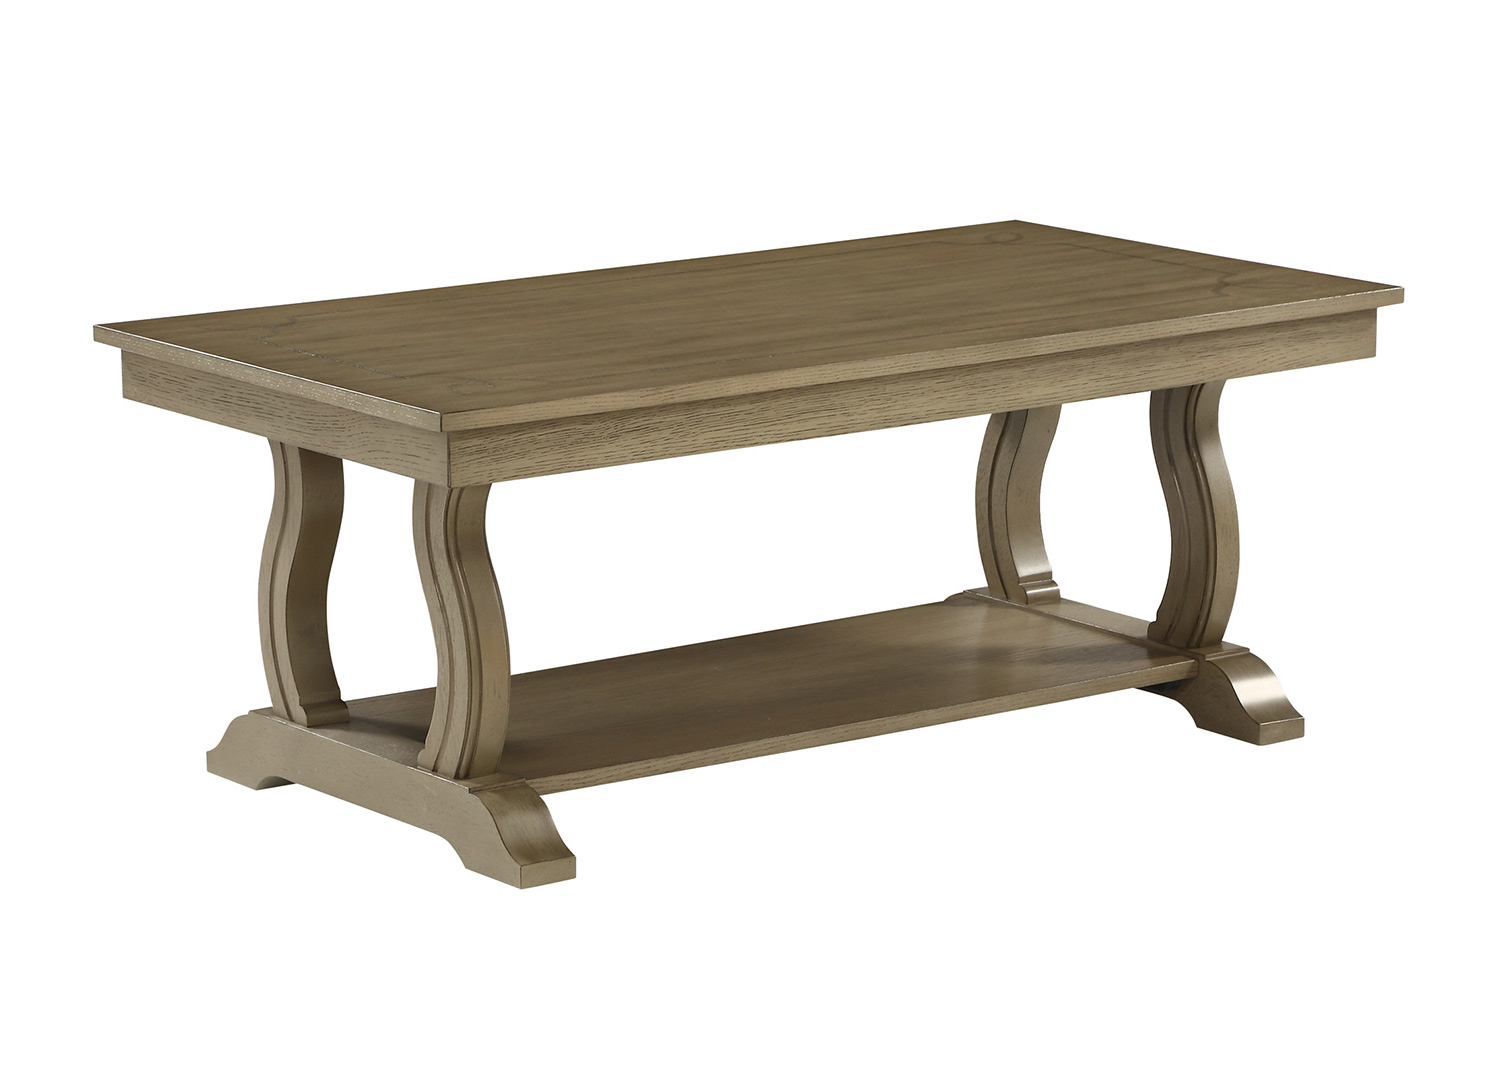 Homelegance Vermillion Cocktail Table - Bisque